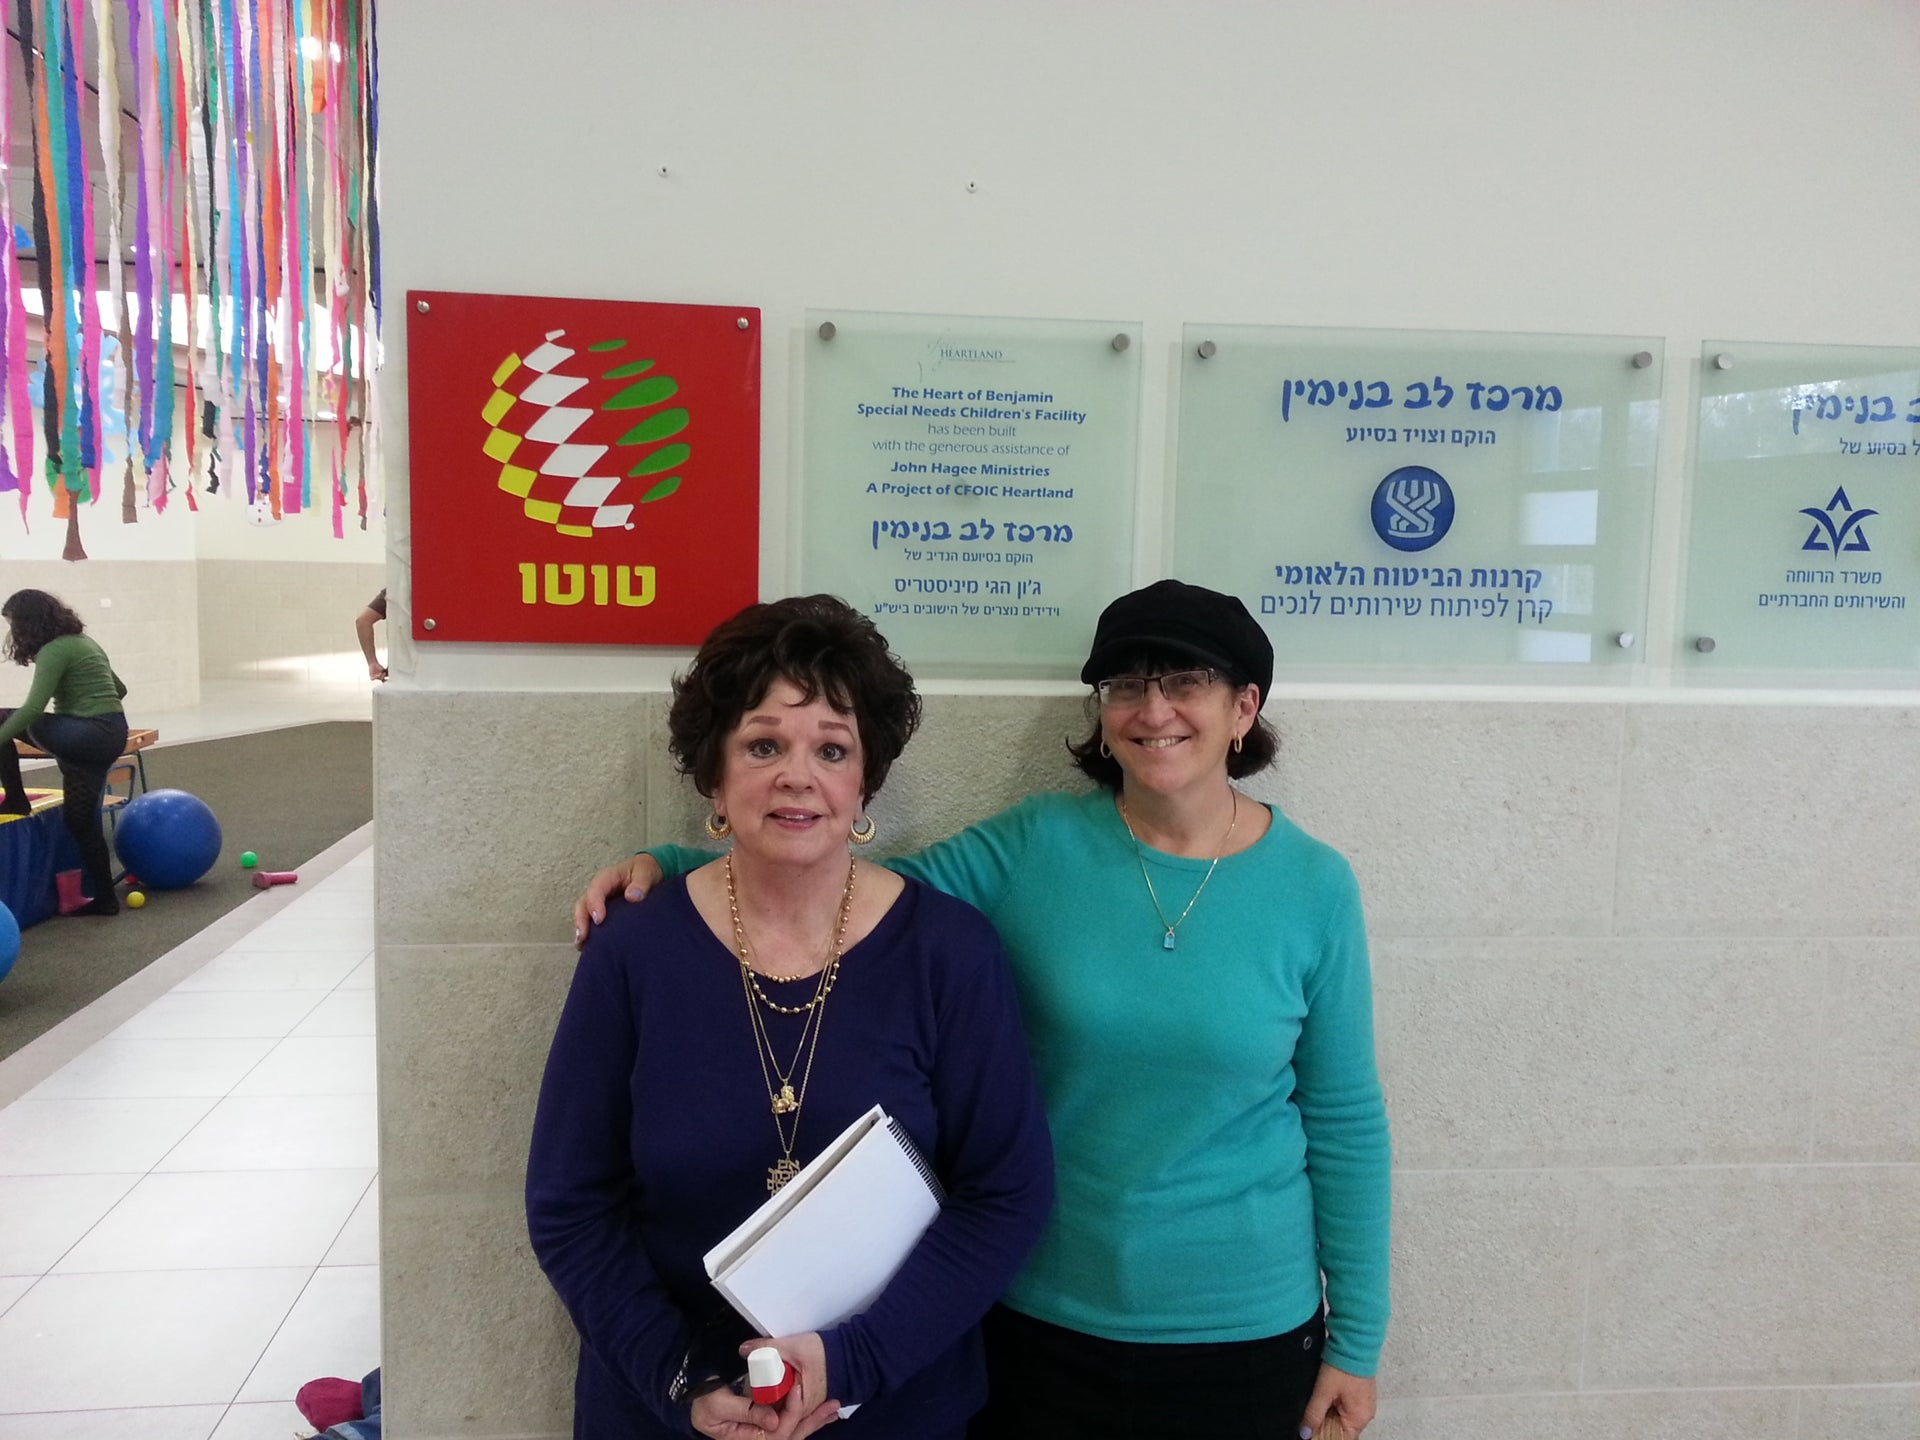 Margy Pezdirtz (left) and Sondra Baras, co-chairs of Christian Friends of Israeli Community, at a center for disabled children supported by their organization in the Jewish settlement of Ofra.